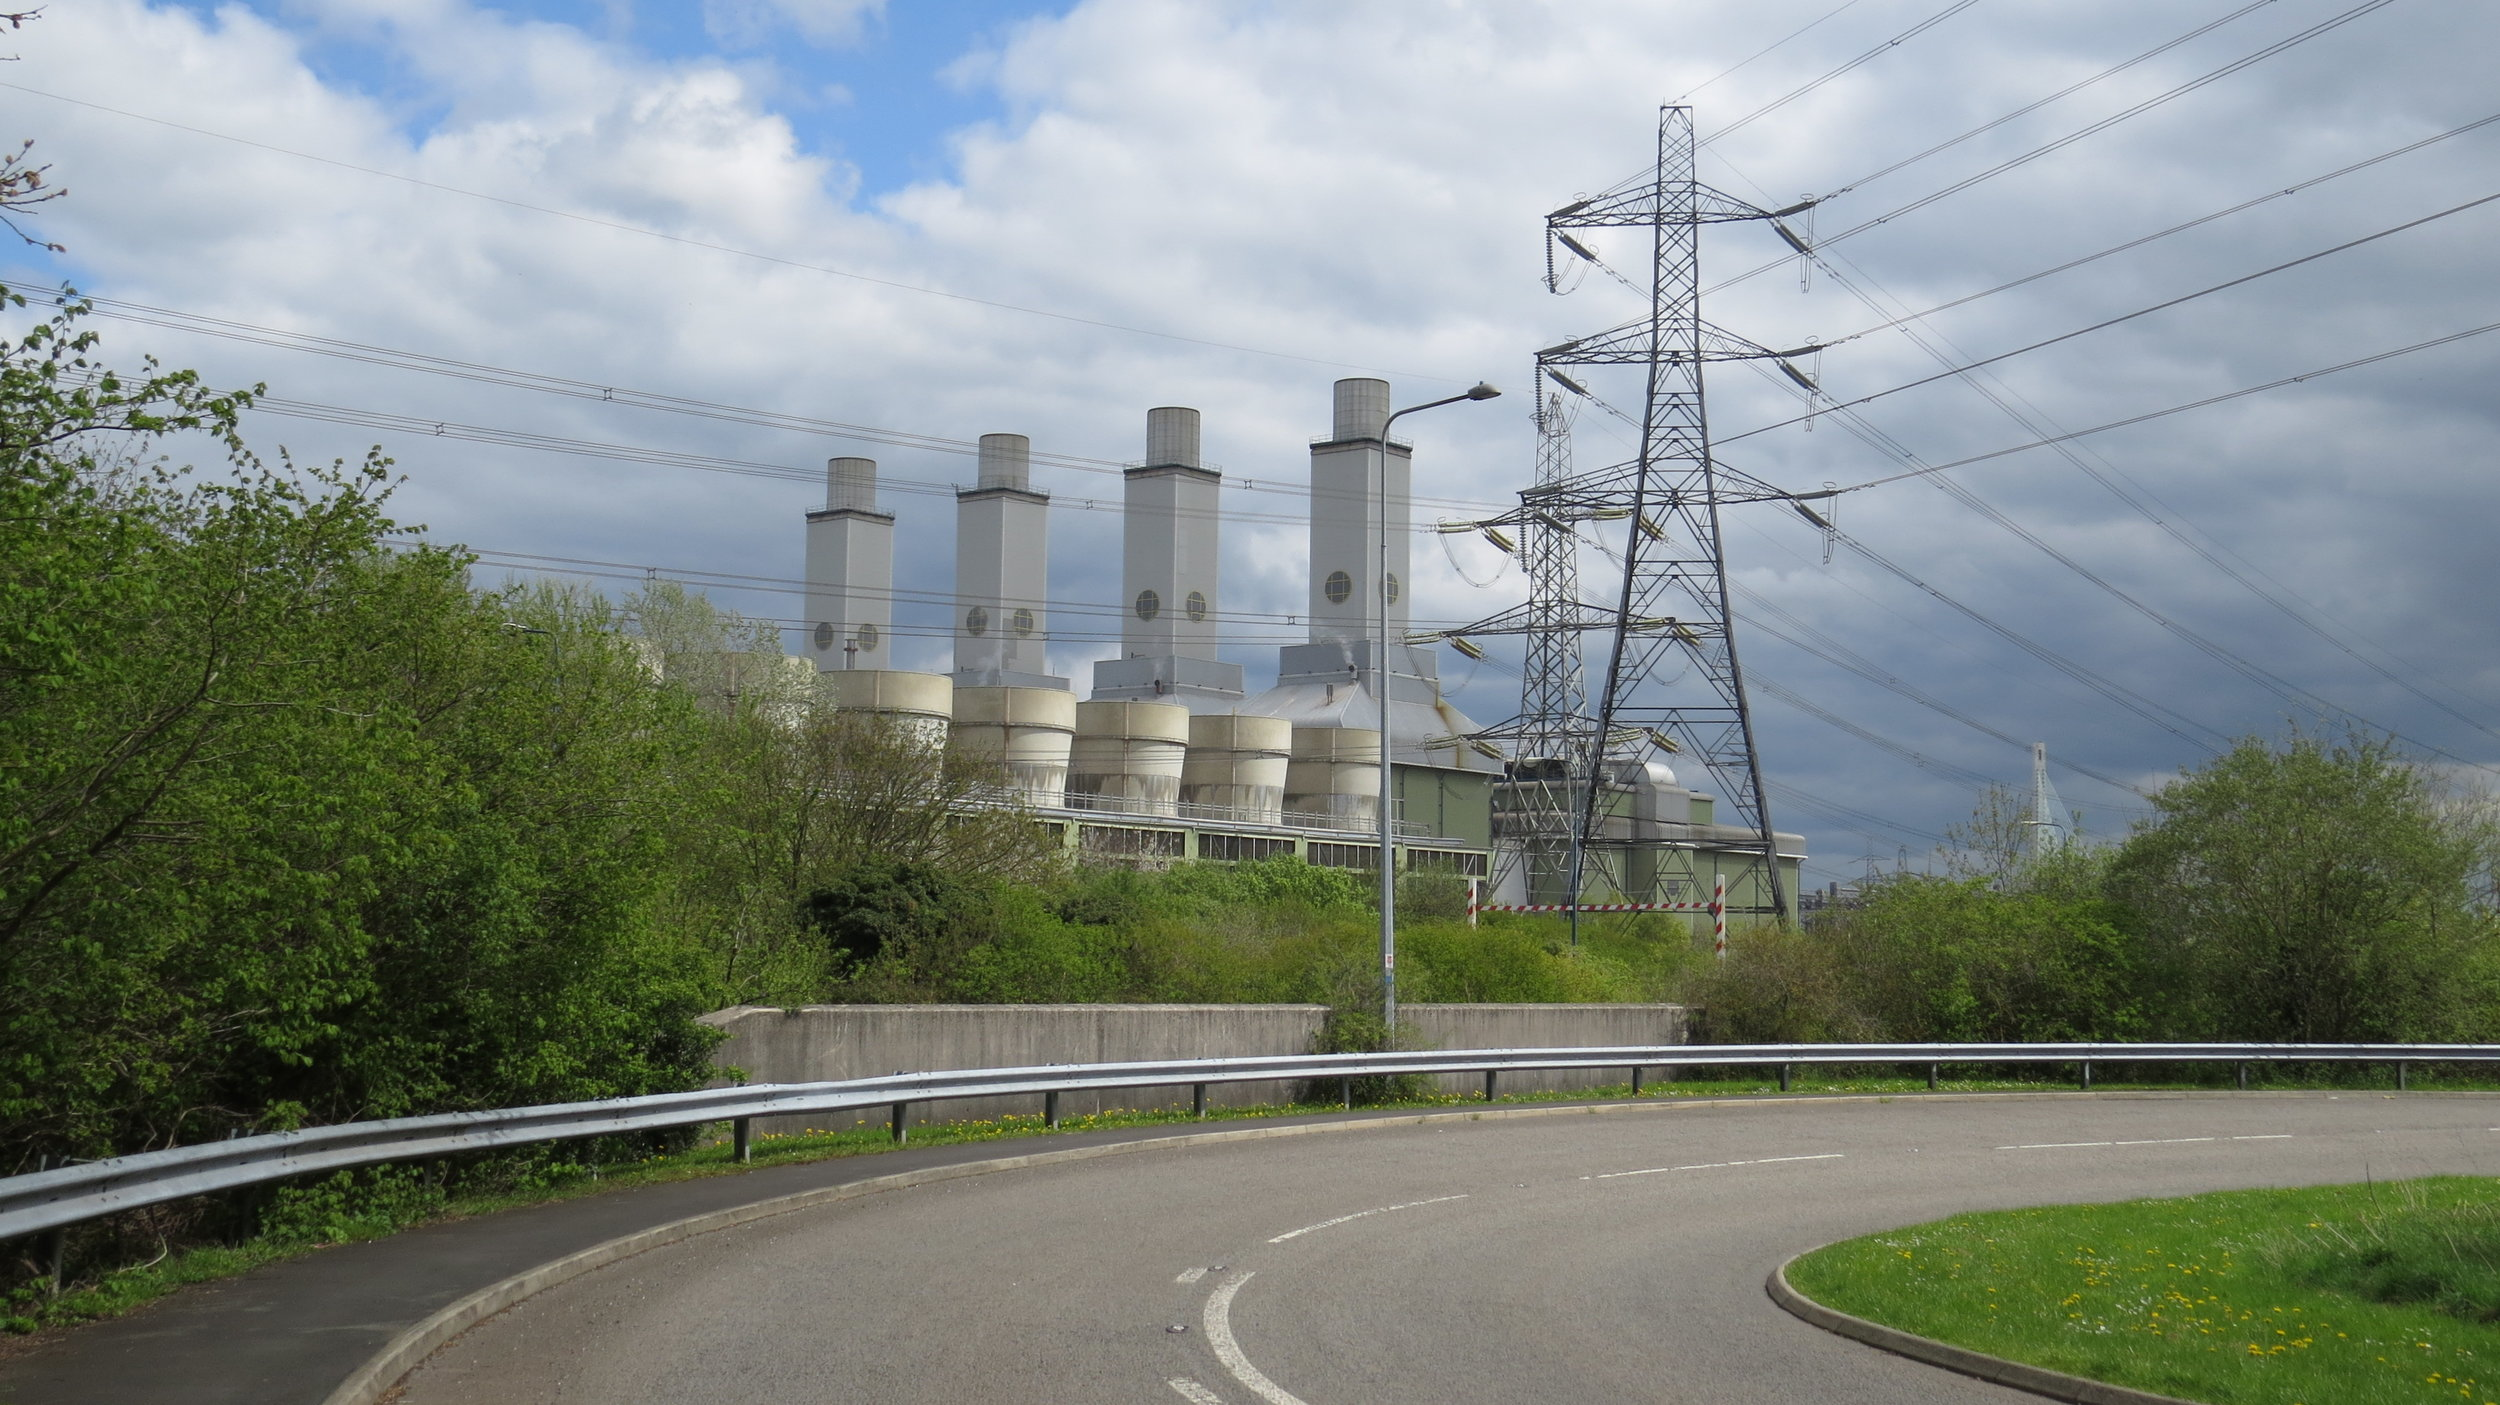 Connah's Quay Power Station